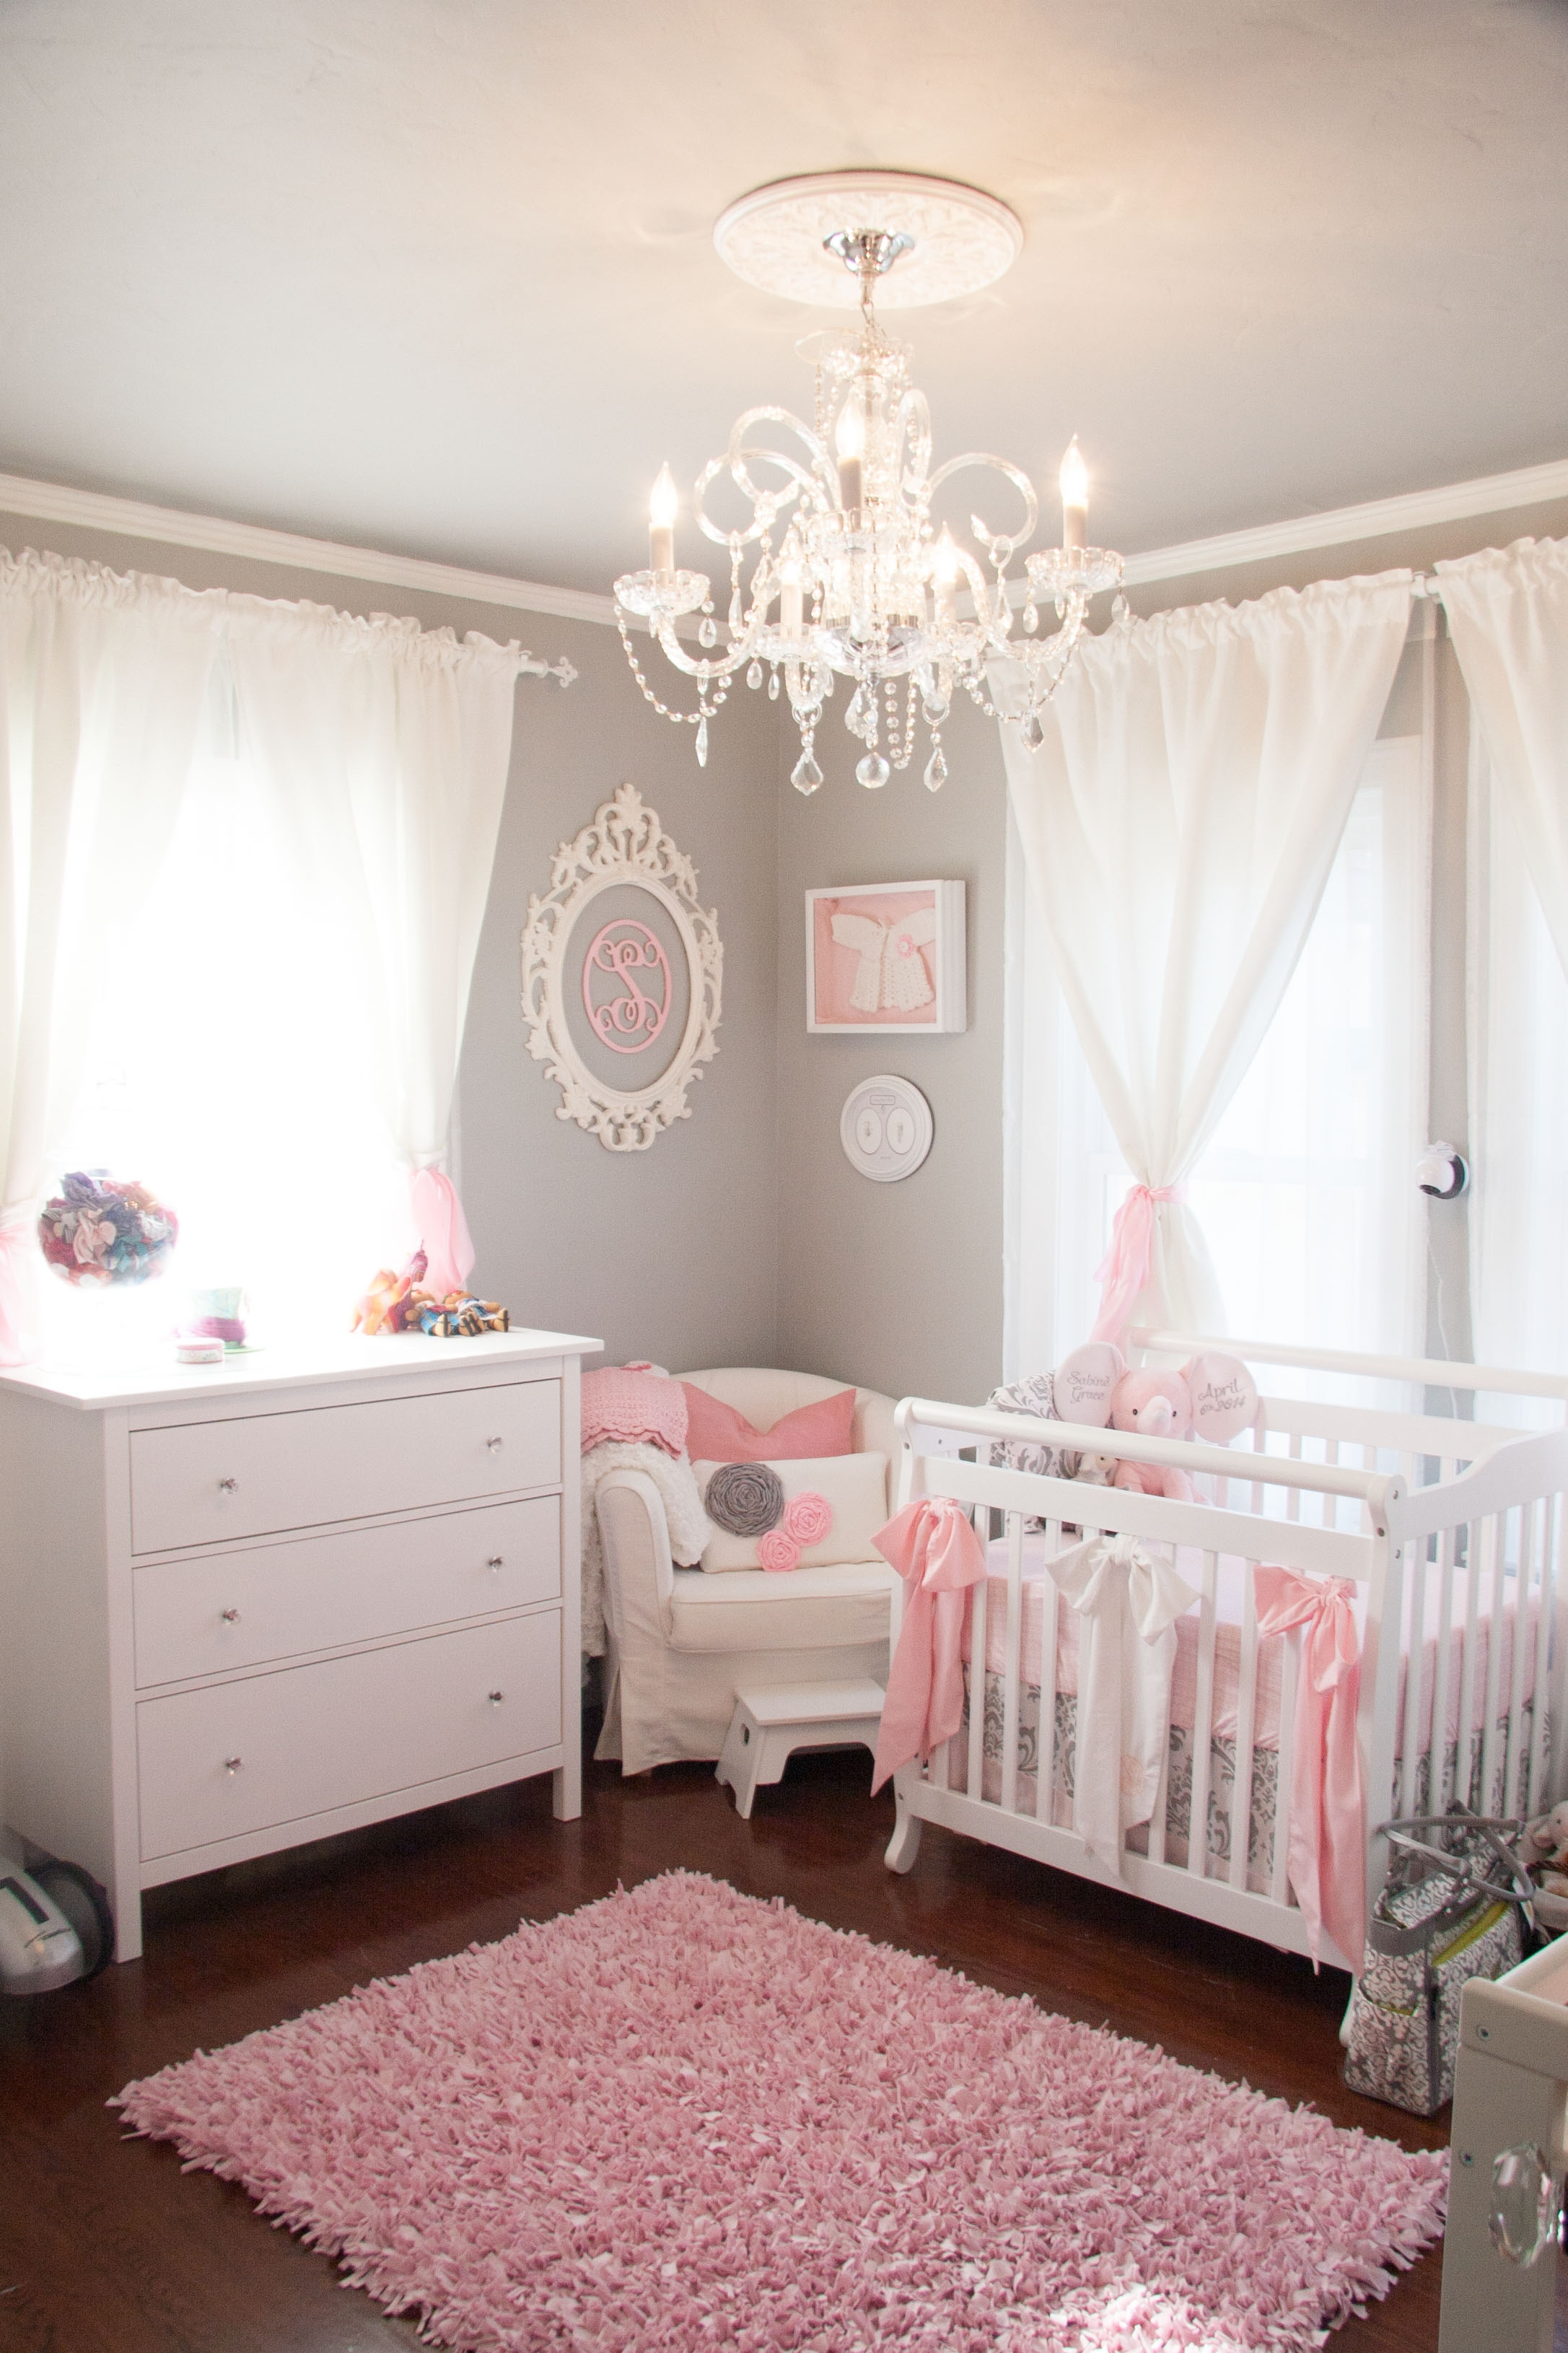 Lamp Create An Adorable Room For Your Little Girl With Chandelier Throughout Chandeliers For Girl Nursery (View 8 of 25)